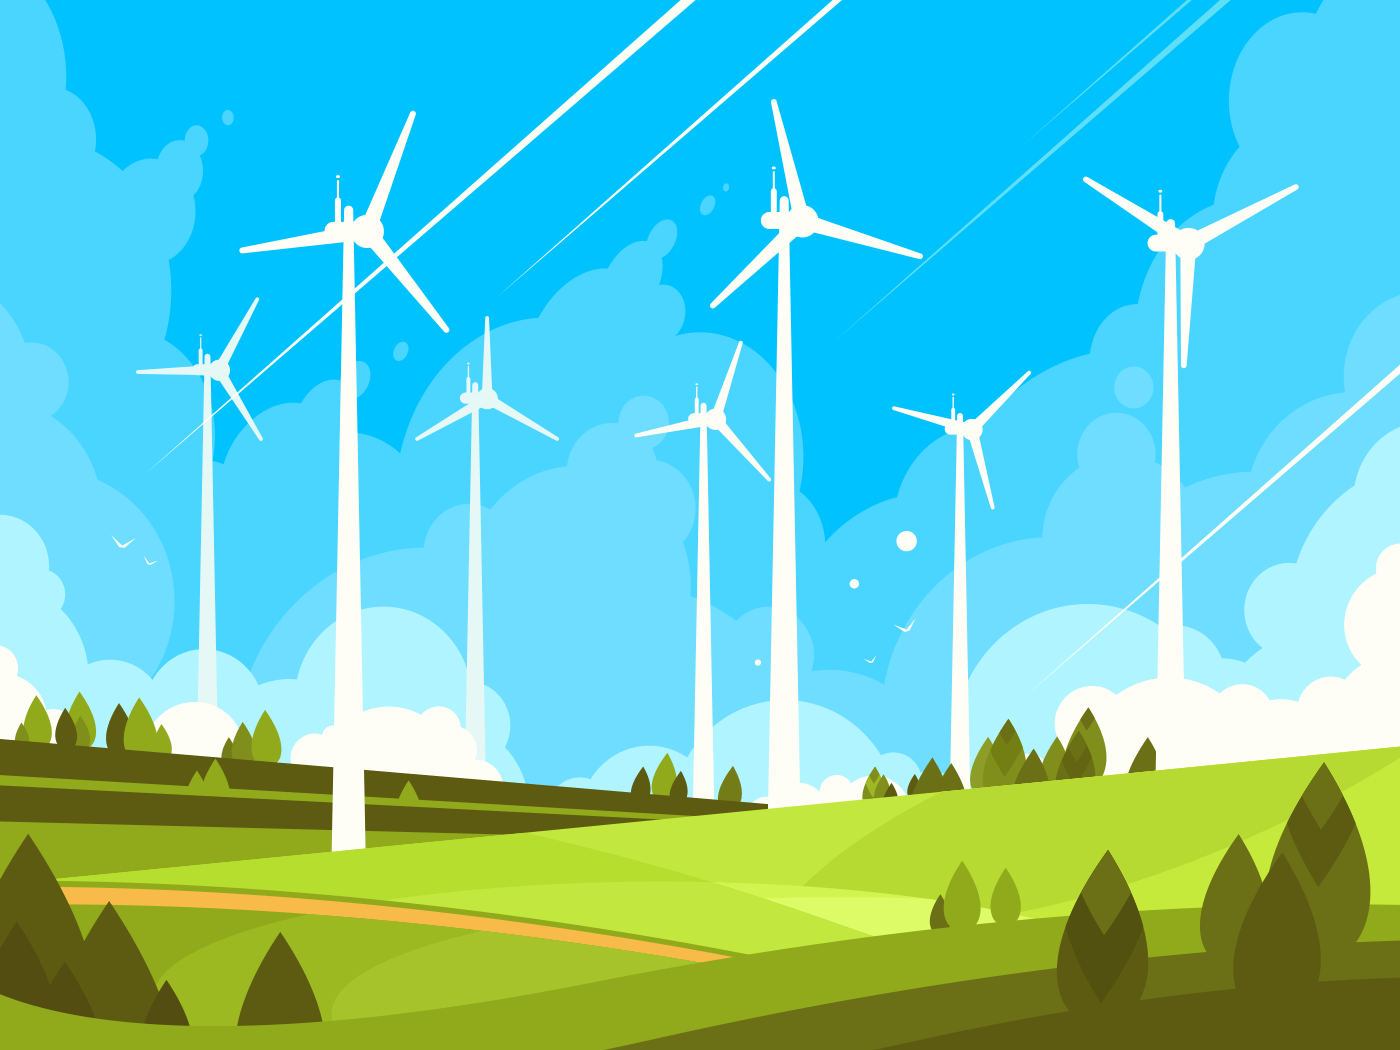 Windmills on green fields. Eco energy in nature. Vector illustration